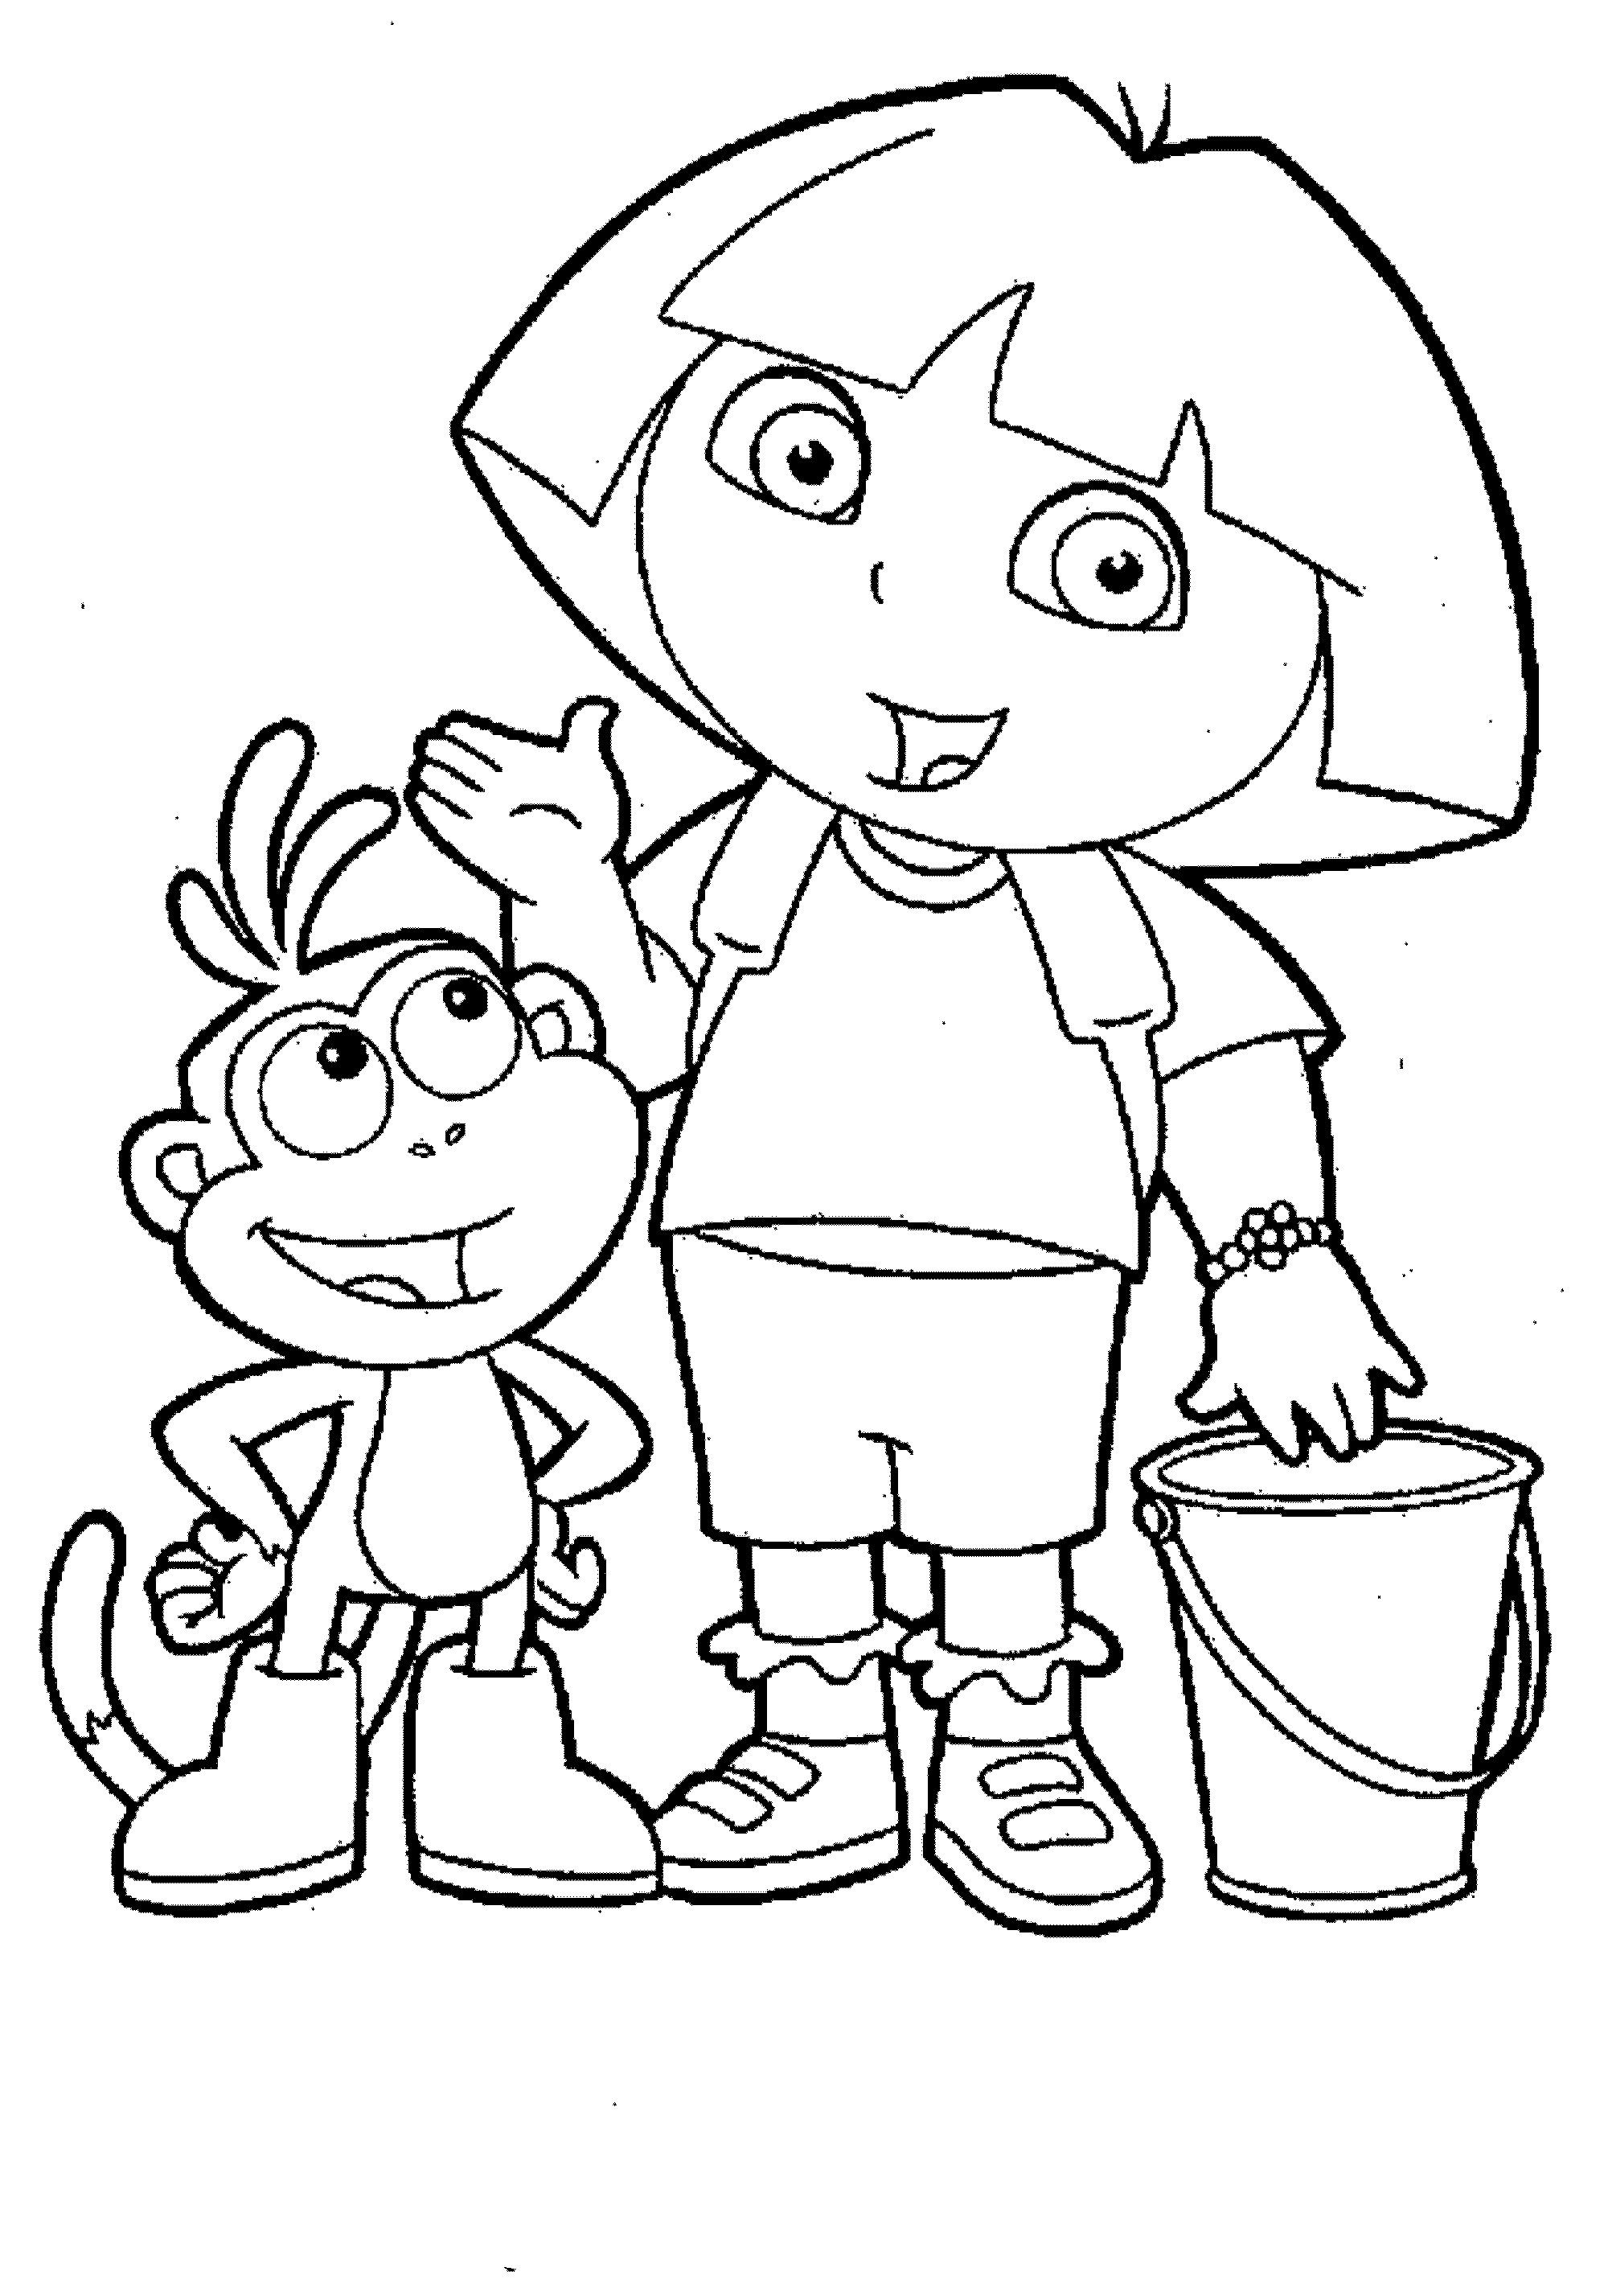 dora coloring pages free printable dora coloring pages free printables momjunction dora printable pages free coloring